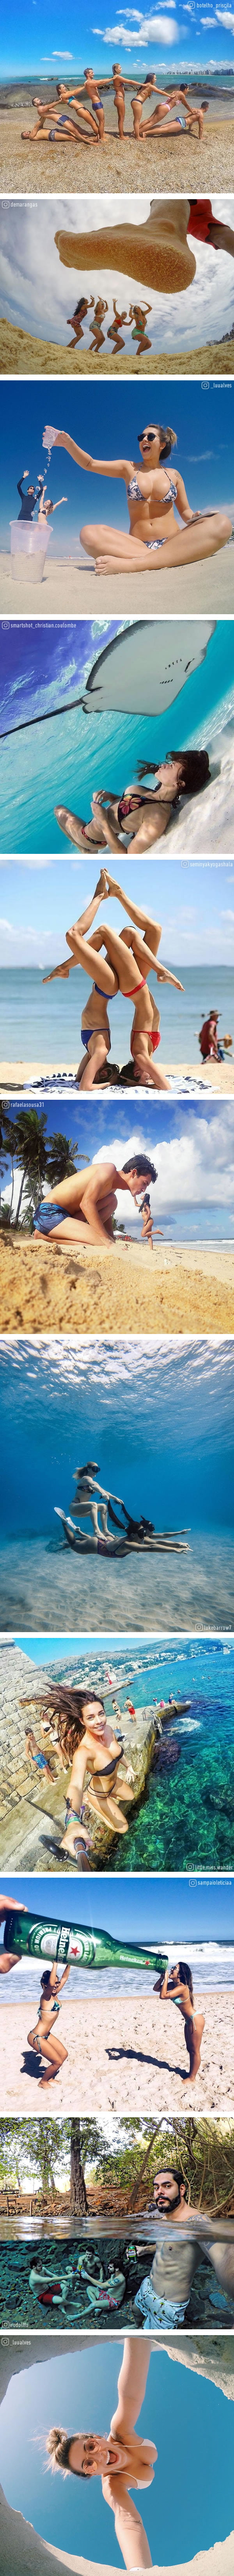 Awesome Holiday Photo Ideas For You Before Summer Ends